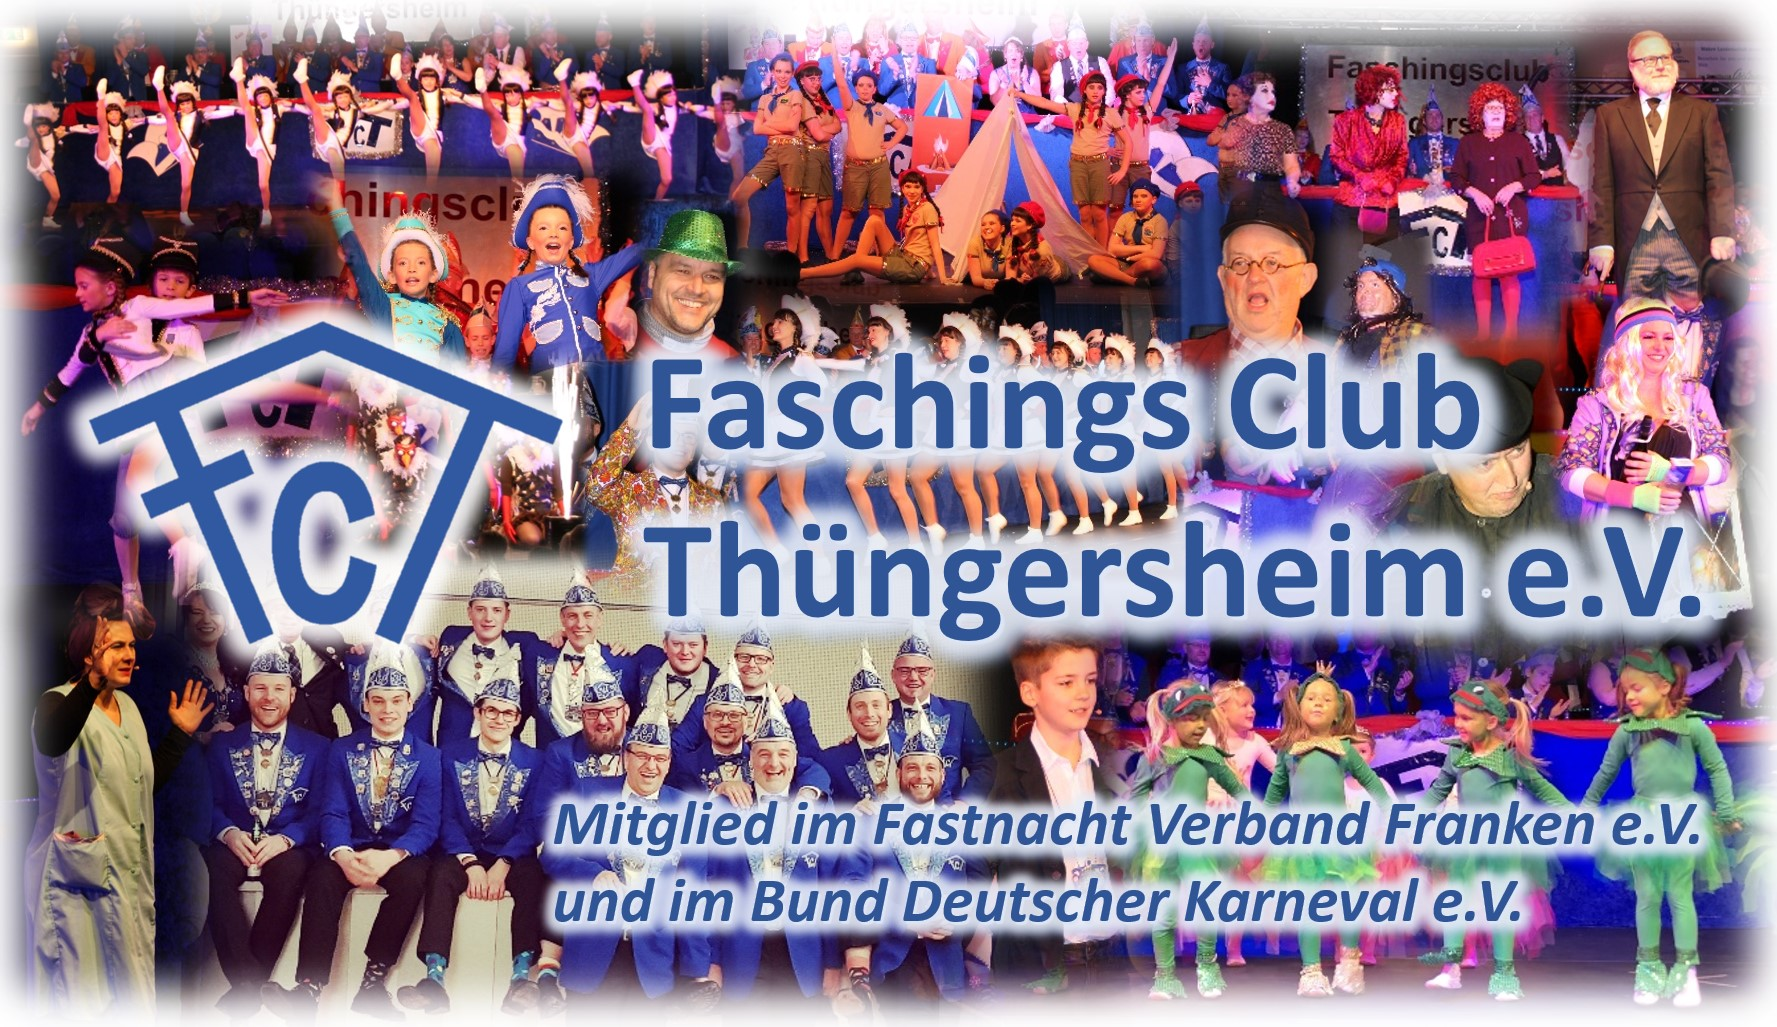 Faschings Club Thüngersheim e.V.